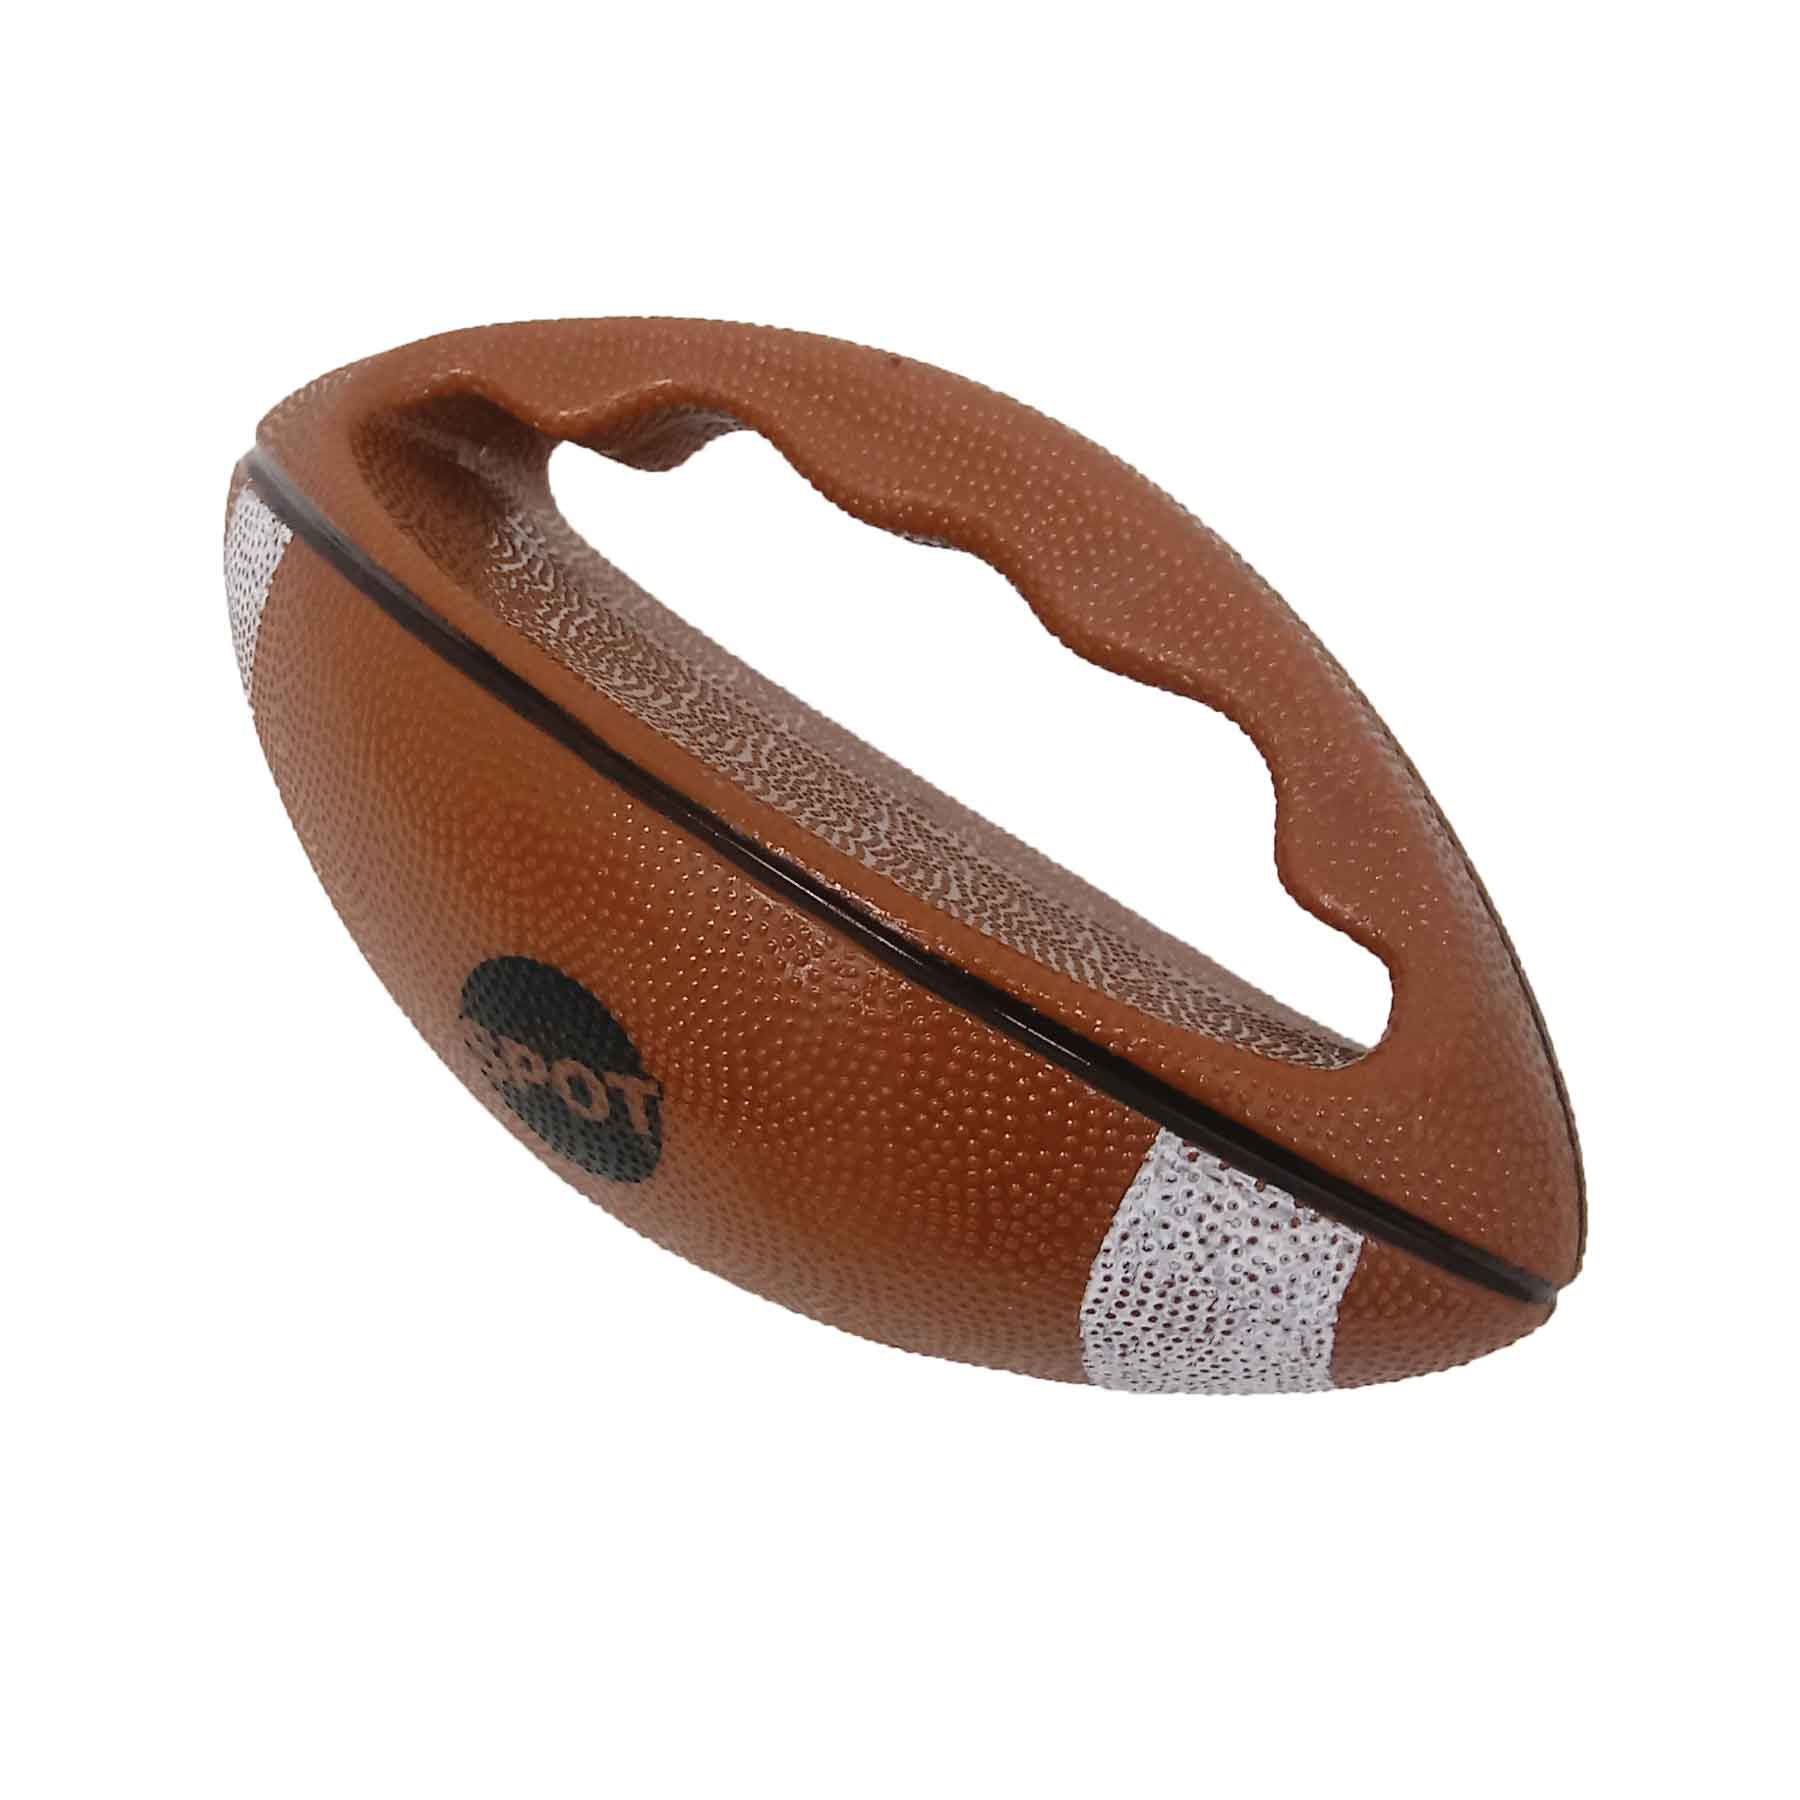 spot-dog-toy-ez-catch-football